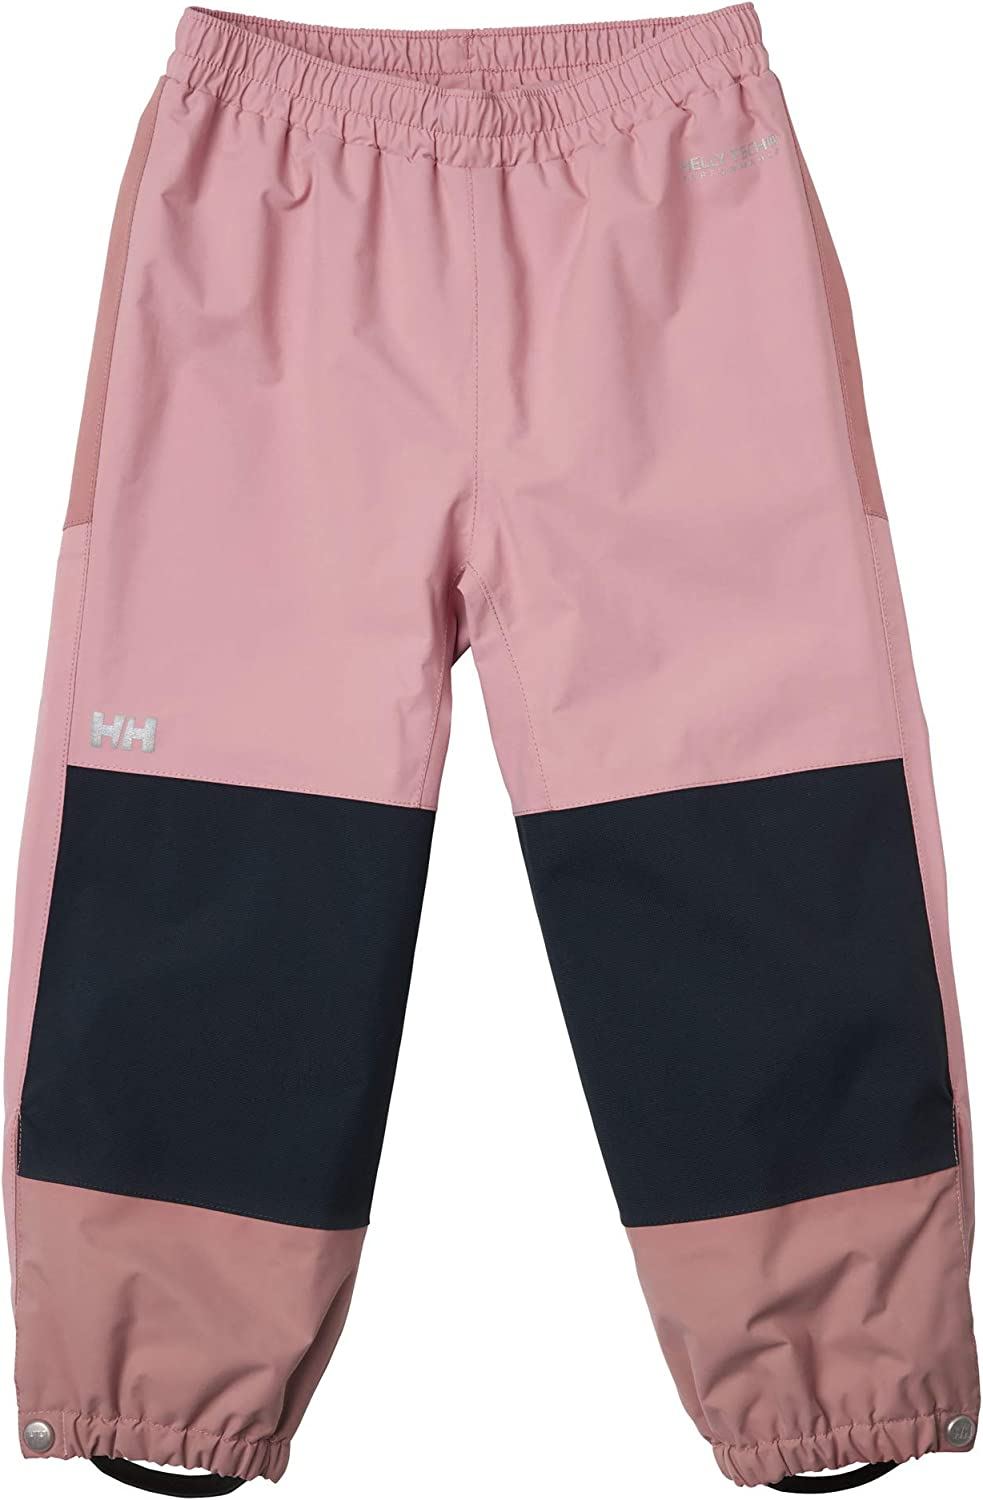 Helly-Hansen Kids Shelter Max 60% OFF Waterproof Pant We OFFer at cheap prices Windproof Outdoor